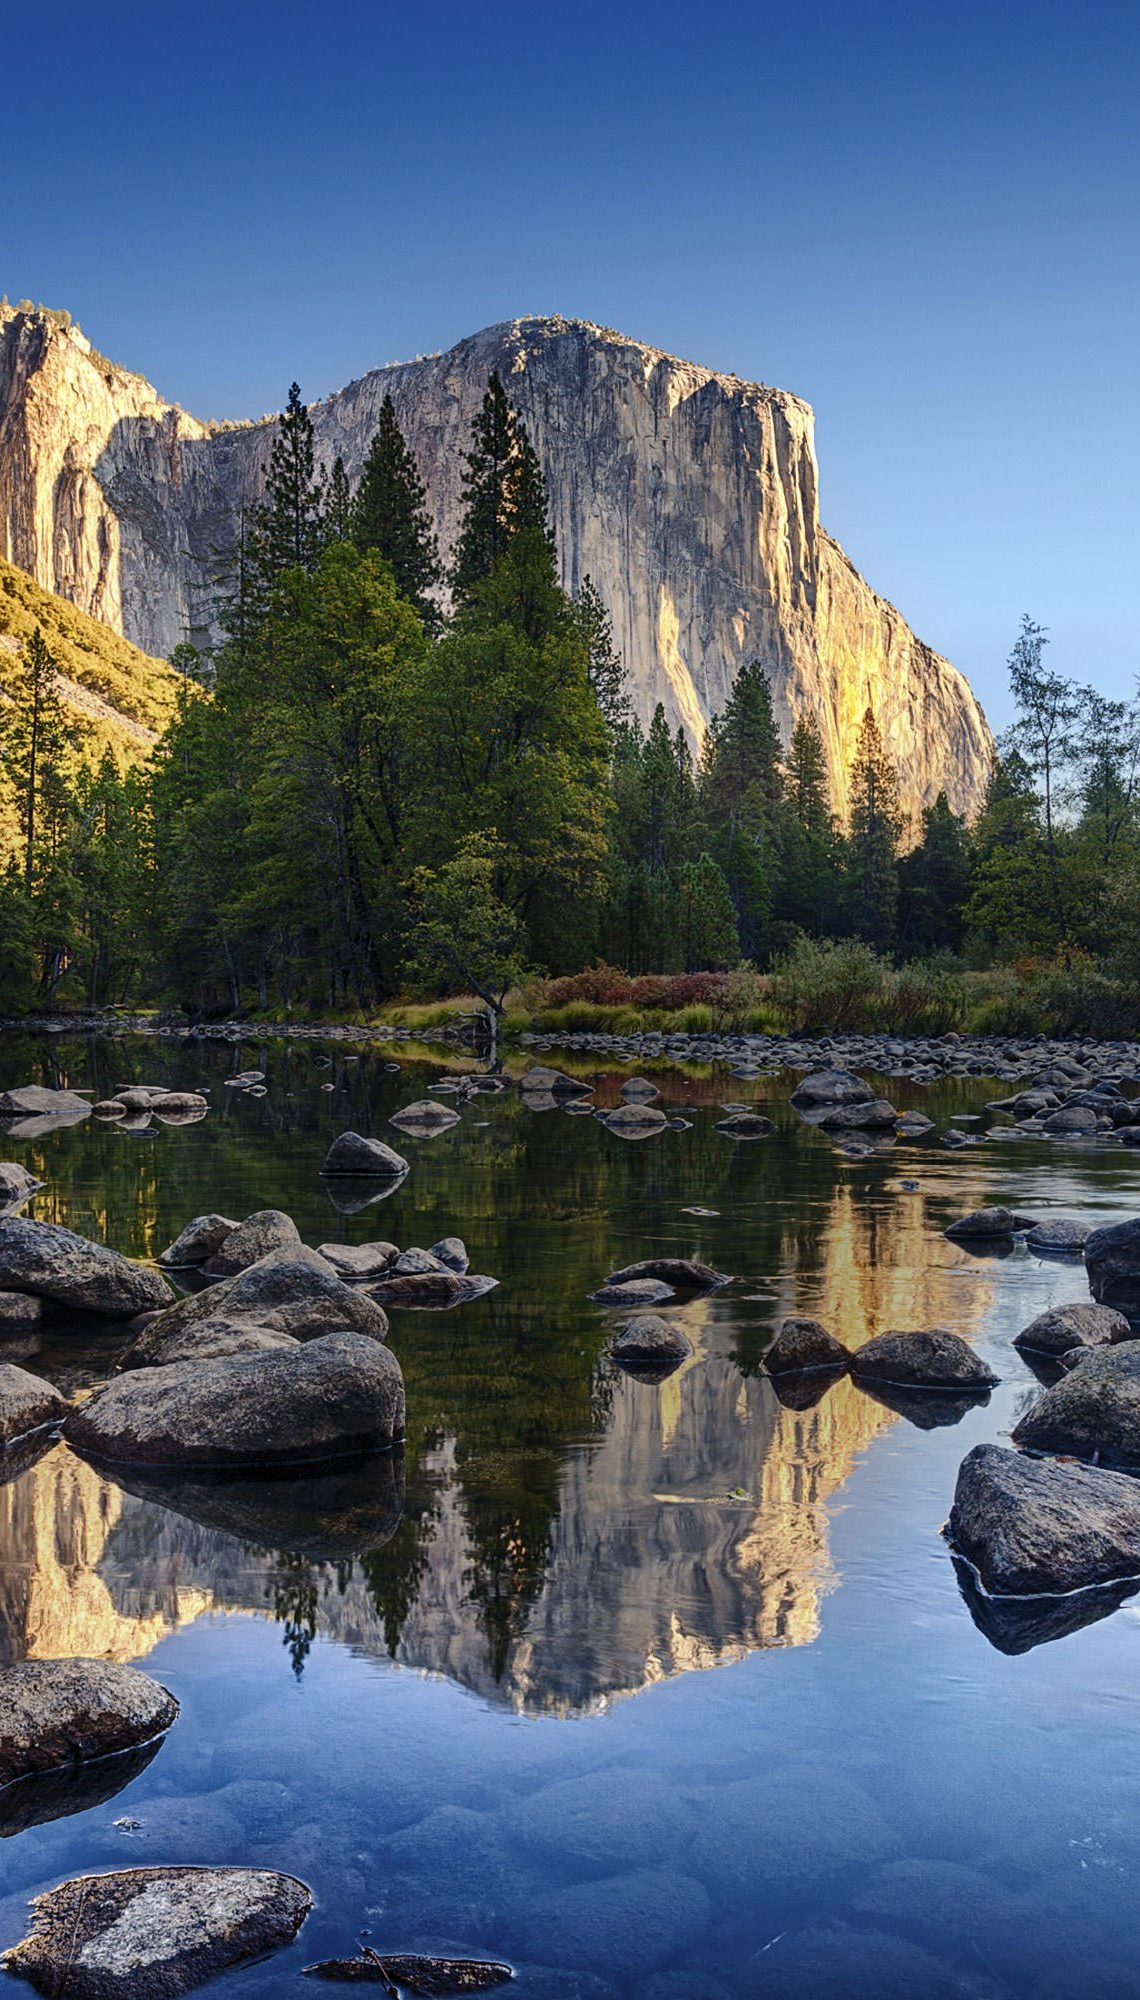 bass-lake-at-yosemite-main